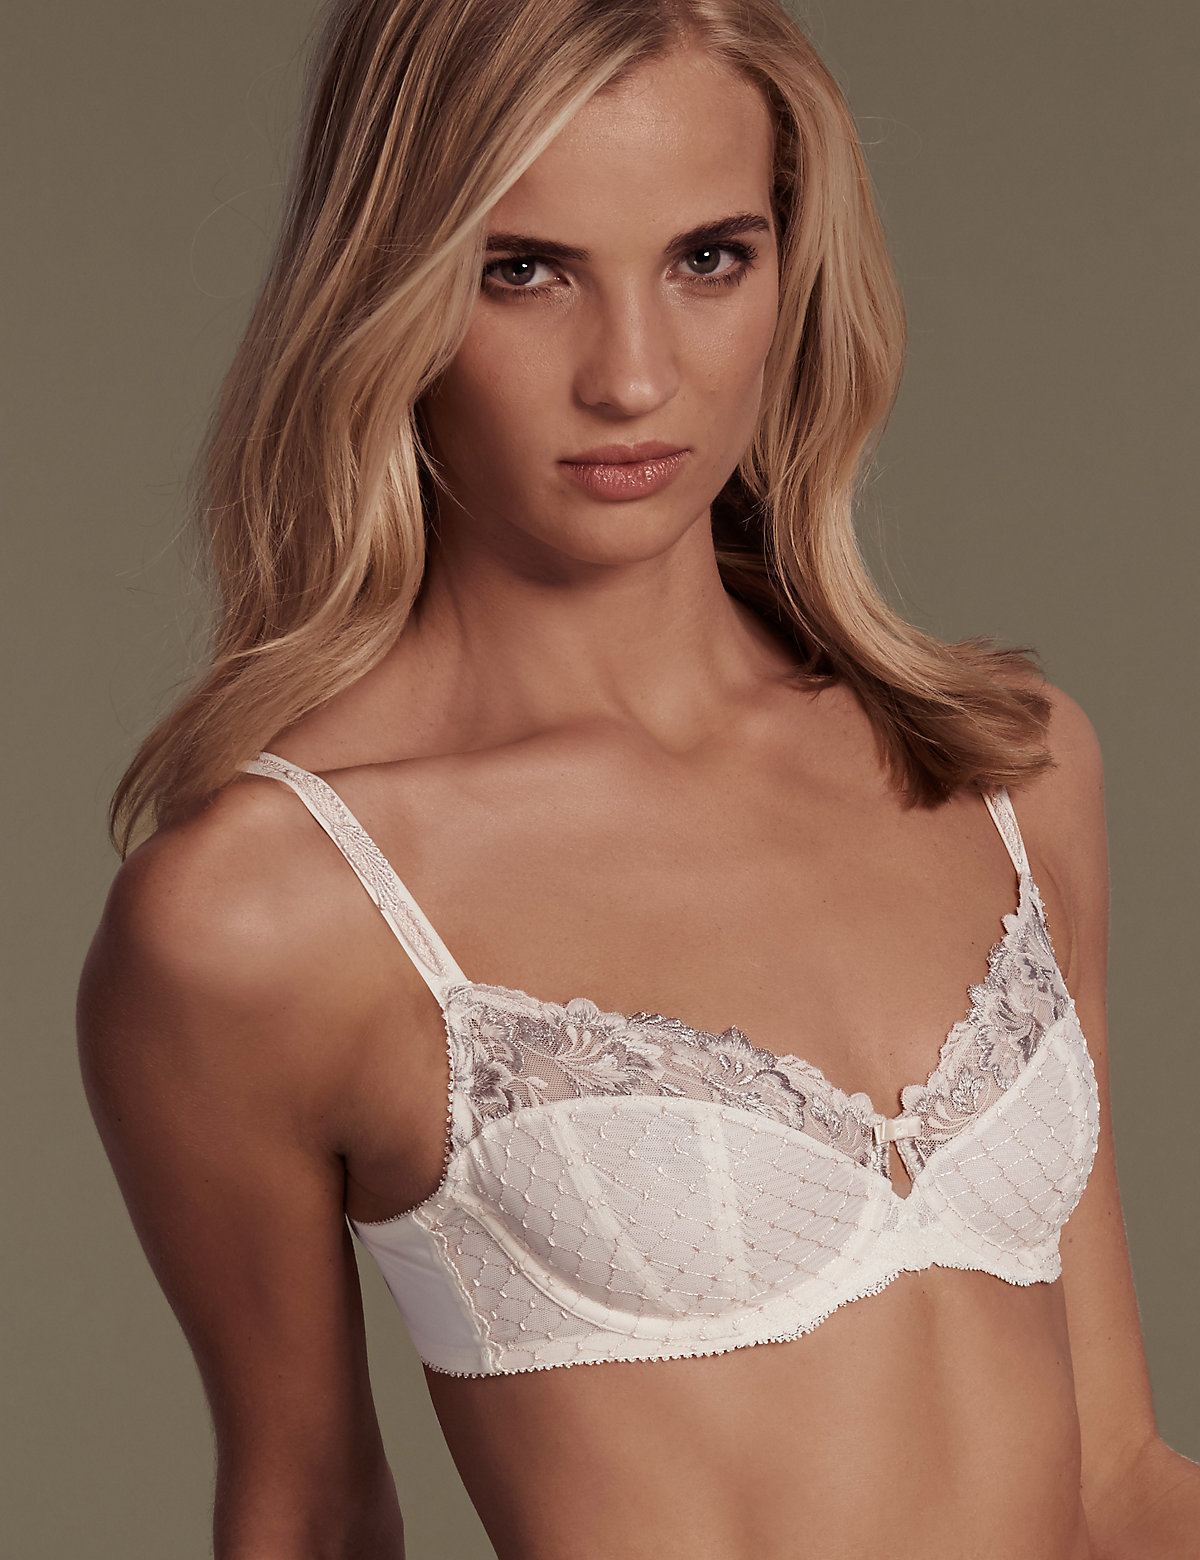 Adored Ophelia Embroidered Non Padded Full Cup Bra B-DD with Cool Comfort Technology